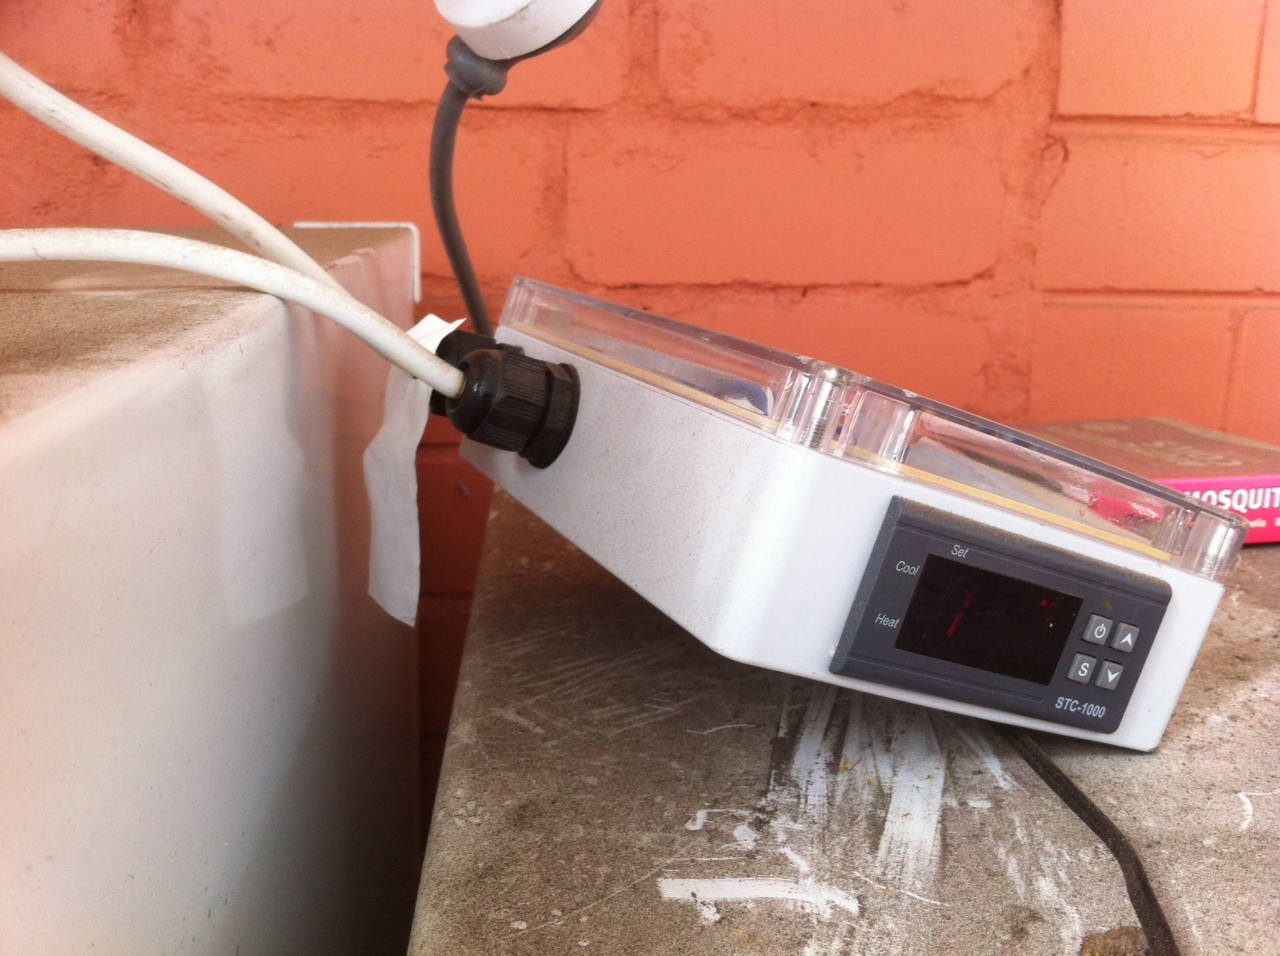 Thermostat Or External Temp Controller Aussie Home Brewer Stc1000 Wiring The Homebrew Forum Photo